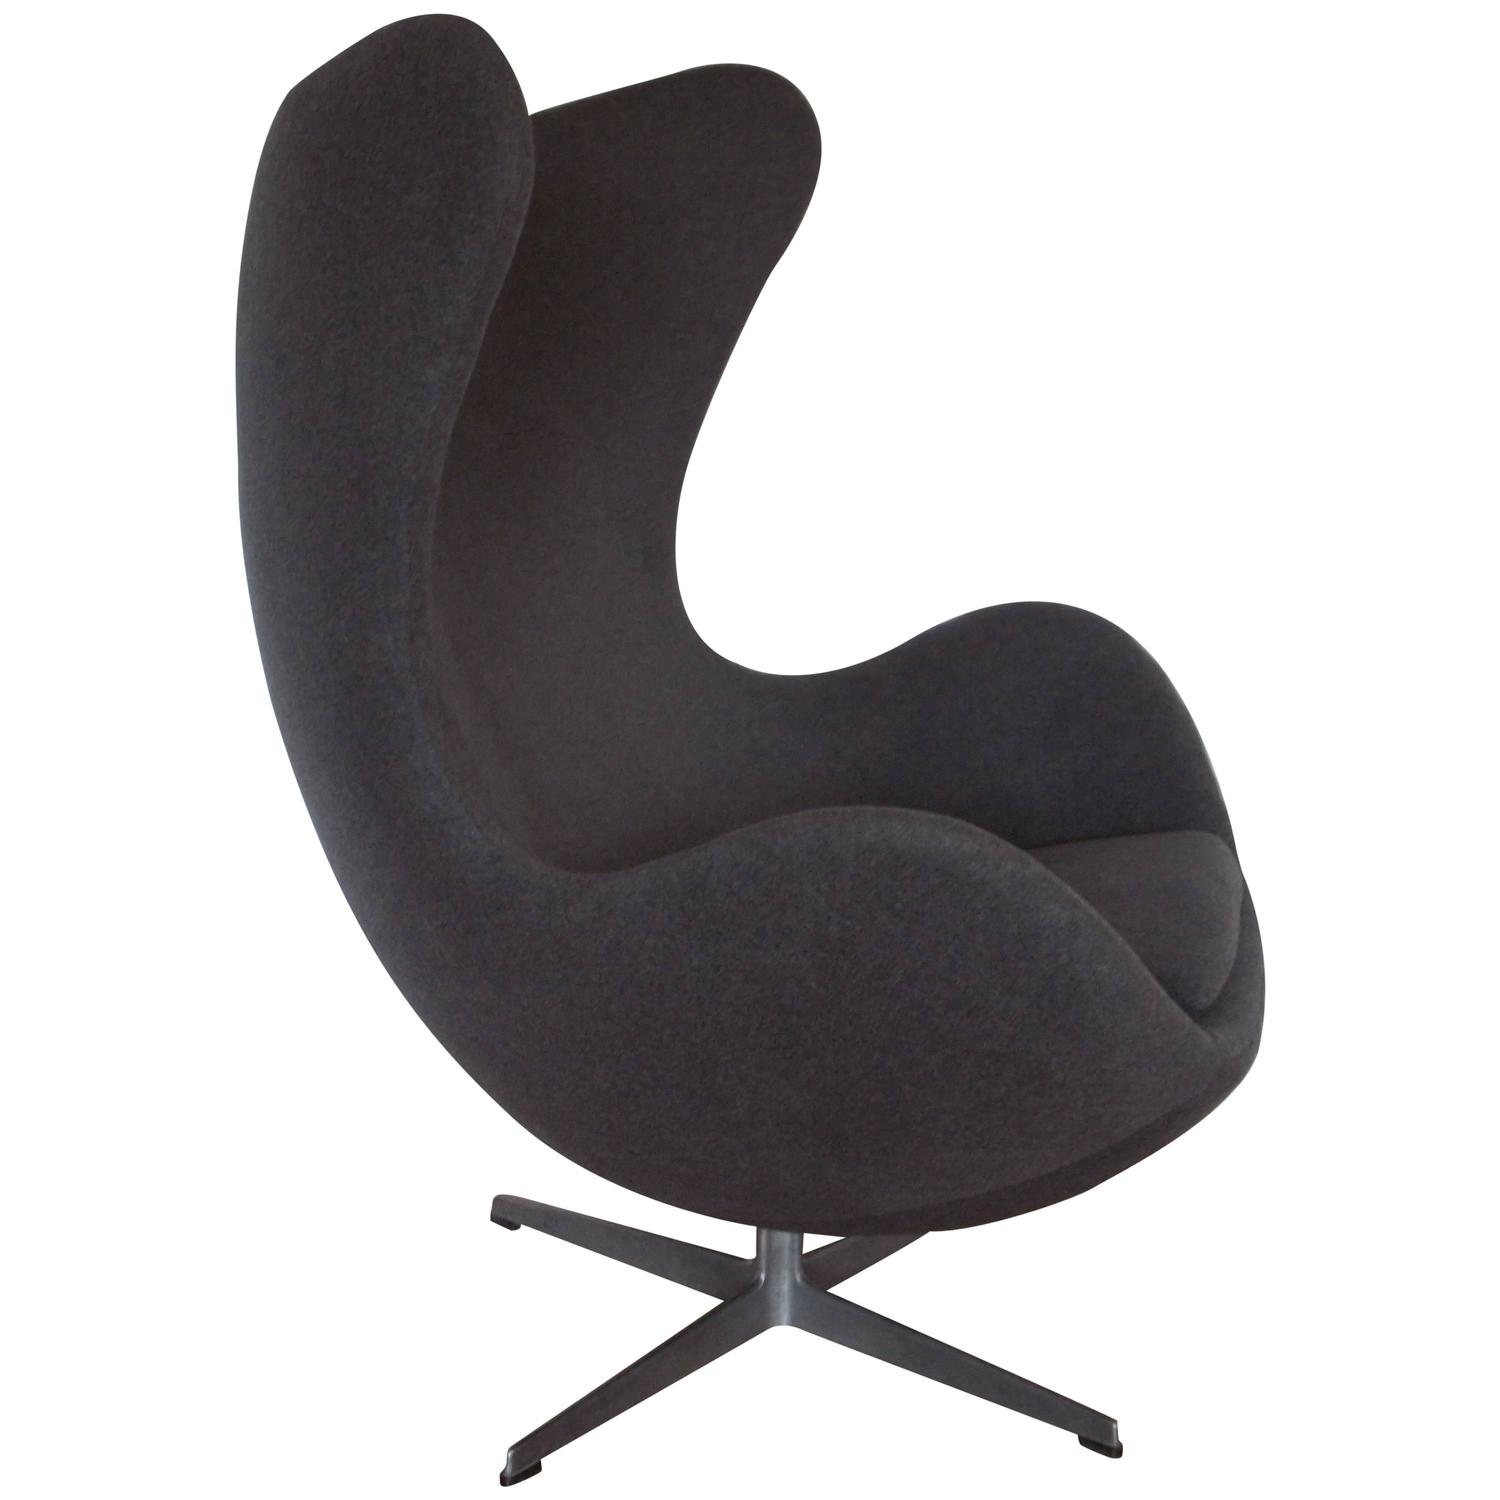 Original vintage arne jacobsen egg chair for fritz hansen for Egg chair jacobsen